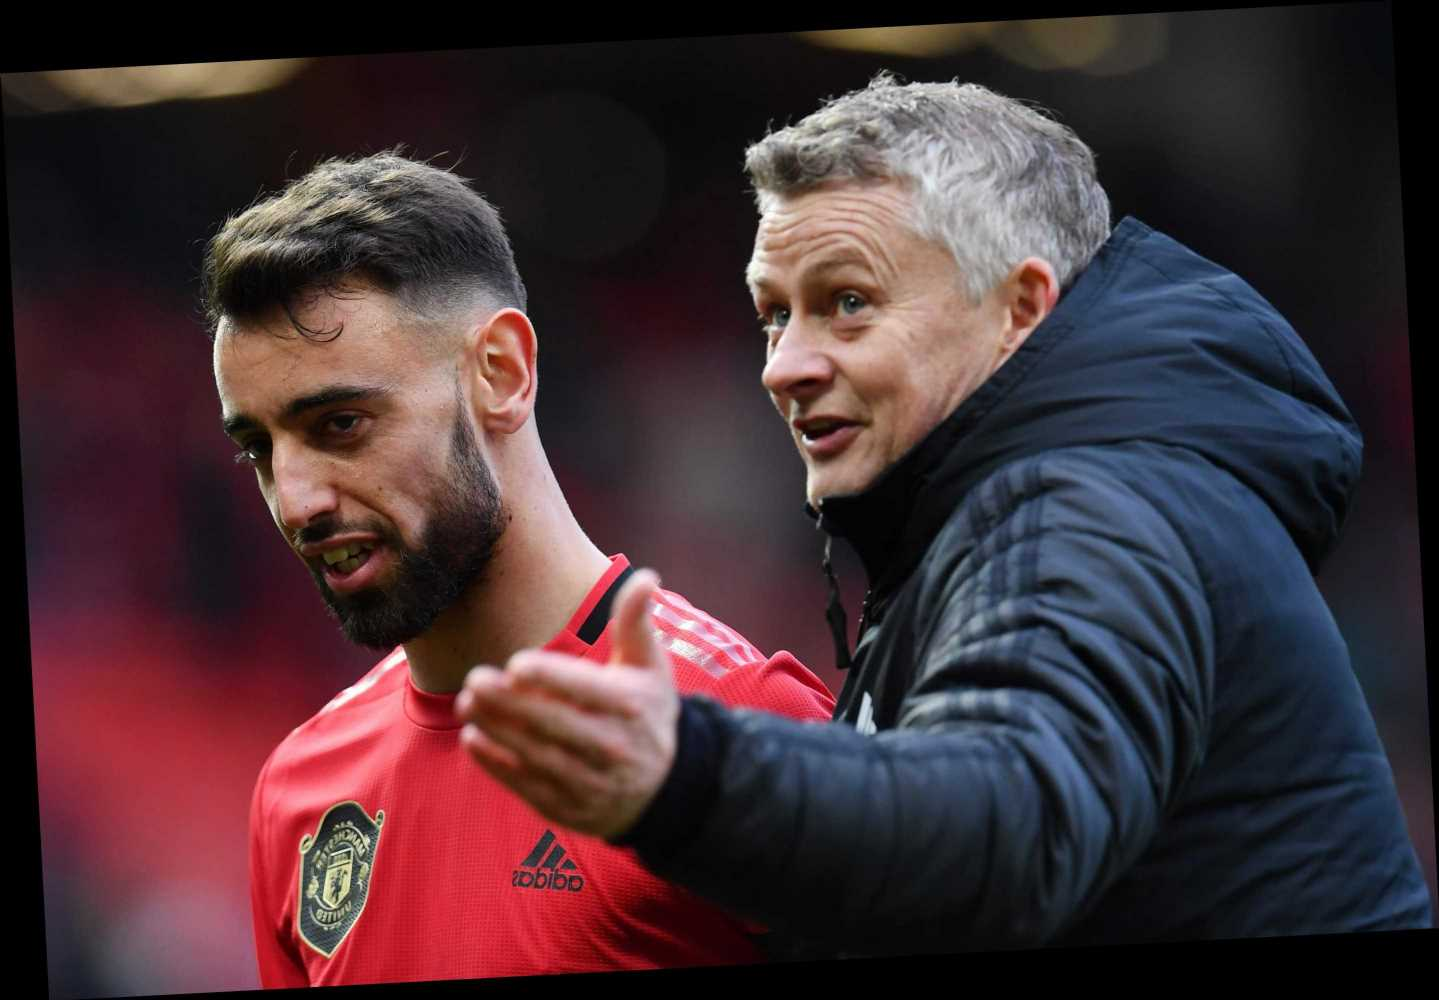 Ole Gunnar Solskjaer forced to defend Man Utd superstar Bruno Fernandes after criticism of display at Liverpool